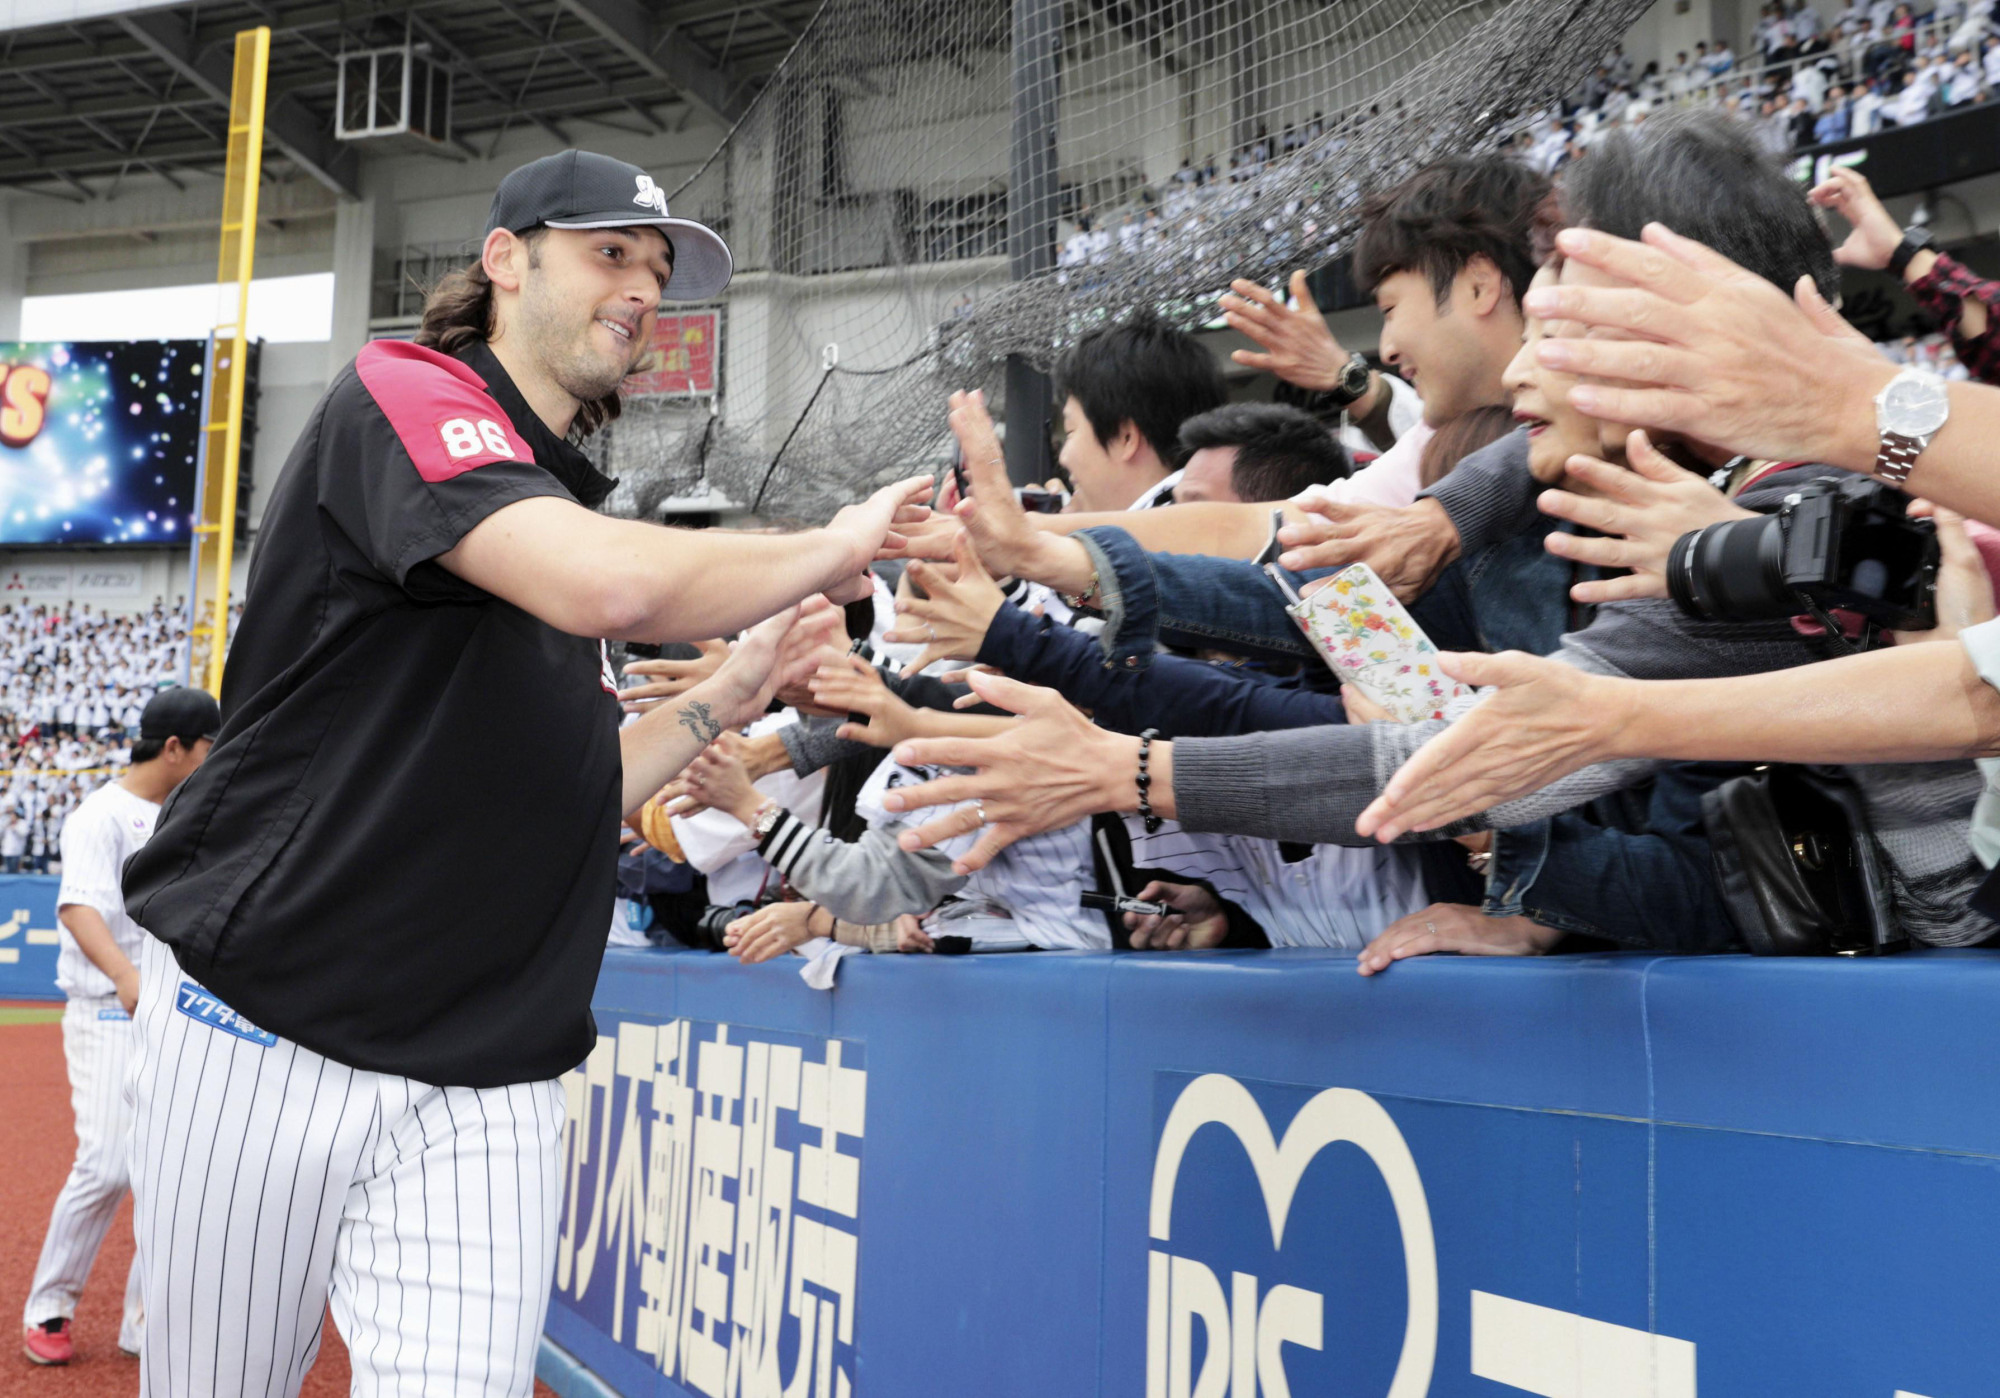 Marines pitcher Mike Bolsinger greets Lotte fans after tossing a shutout on Saturday. | KYODO